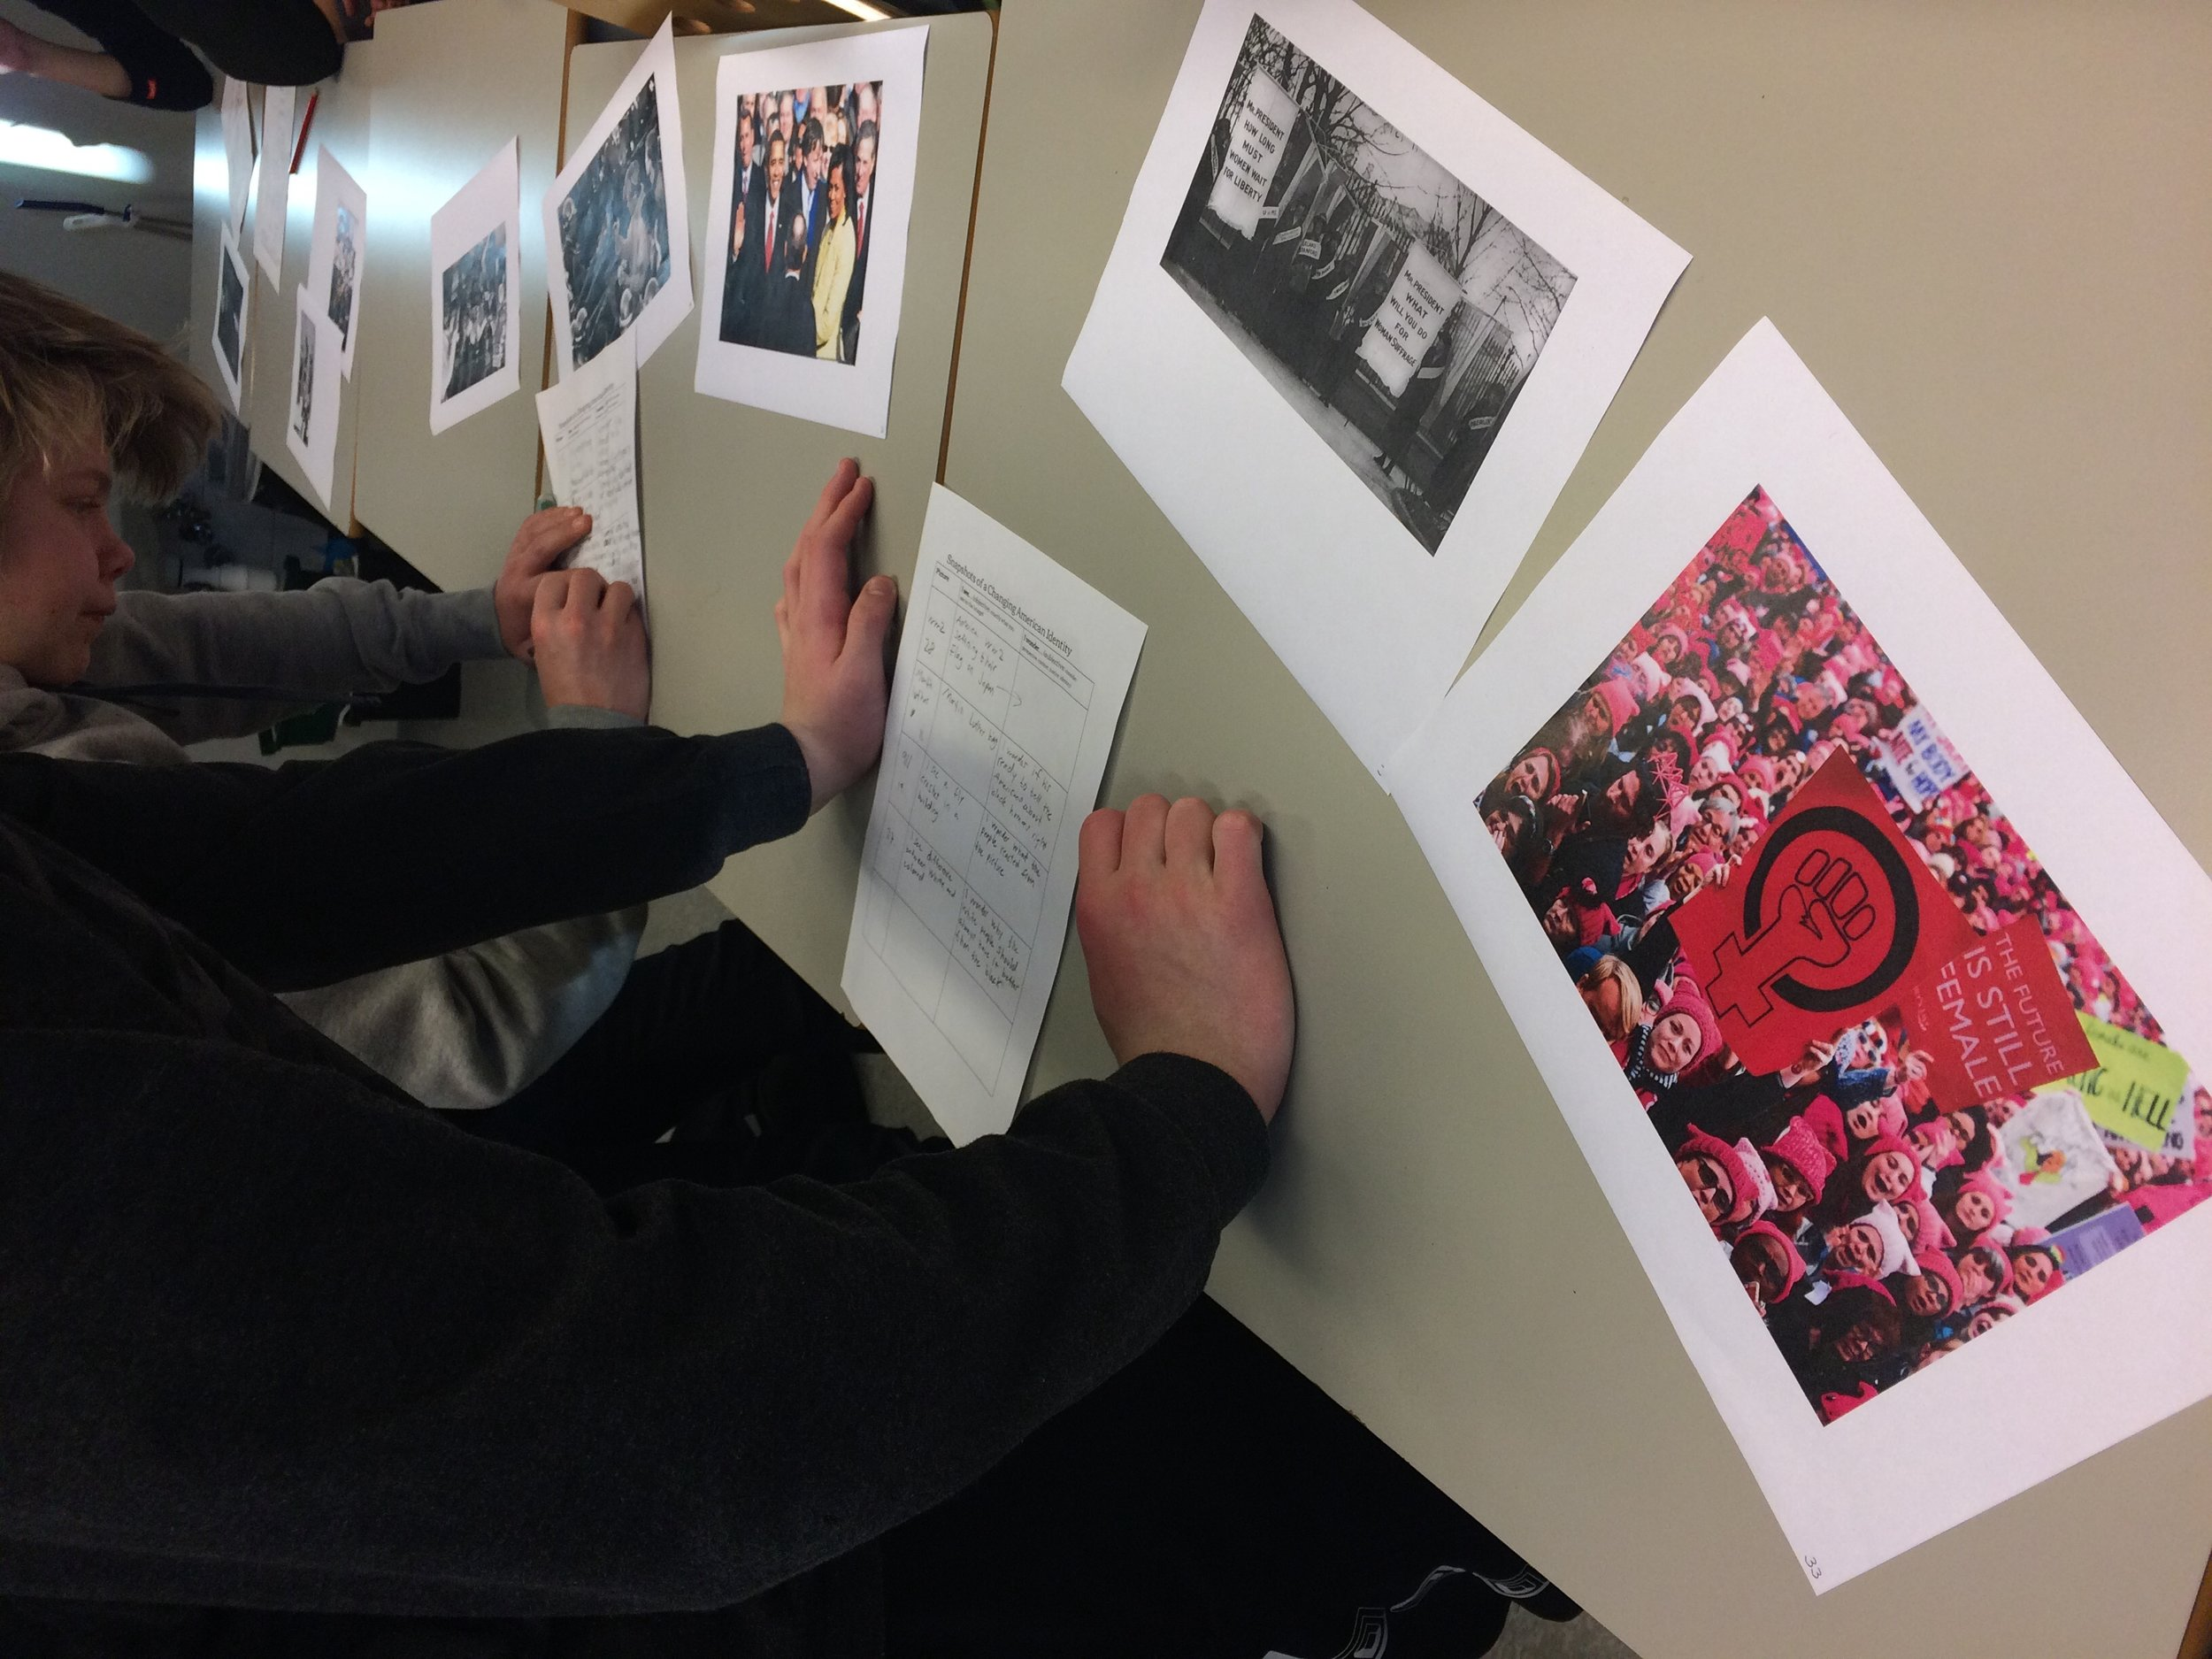 """Students analyze famous photographs from US history in the workshop titles """"Snapshots of a Changing American Identity"""""""